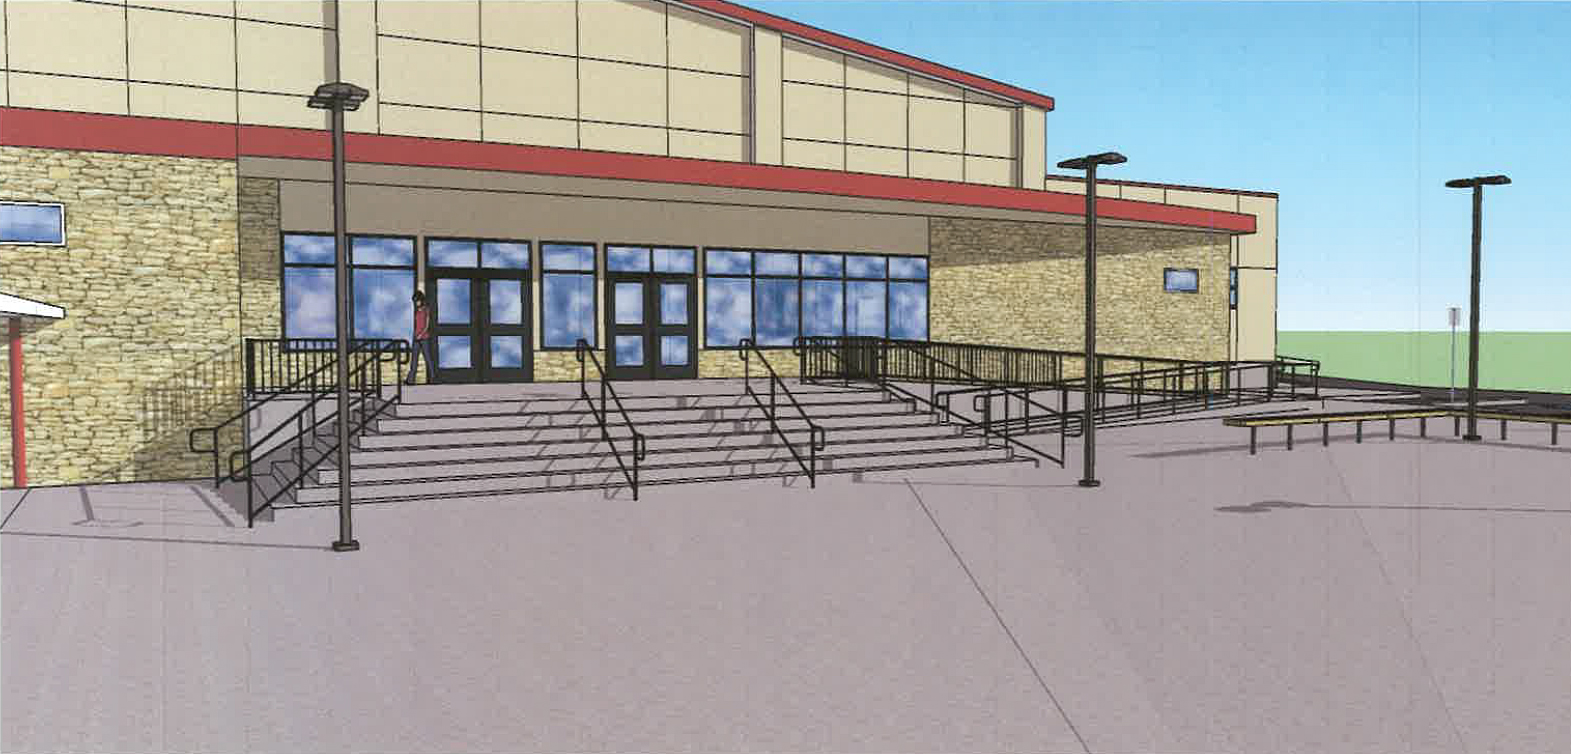 An architect's rendering shows the front of South Fork High School's planned new gymnasium. (Siskiyou Design Group)